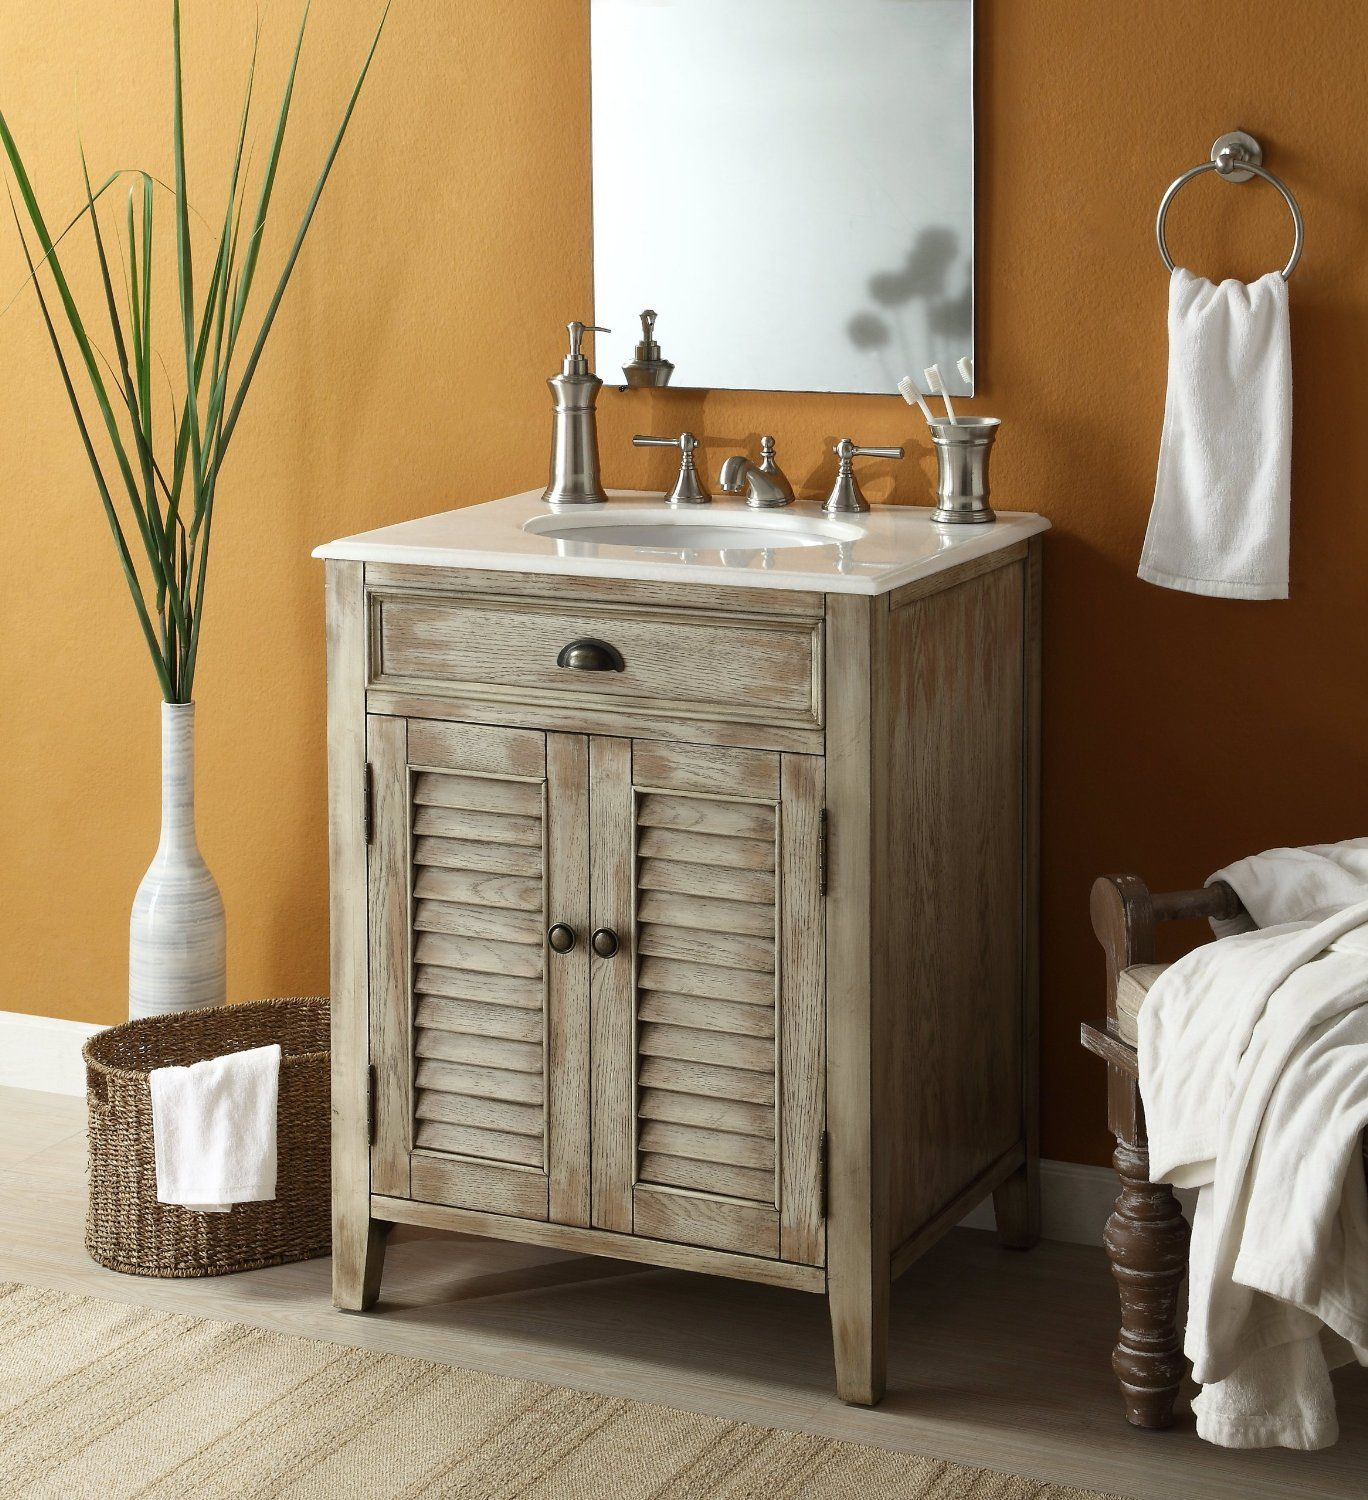 Rustic Bathroom Vanities To Make Your Bathroom Look Gorgeous - Cottage style bathroom vanities cabinets for bathroom decor ideas